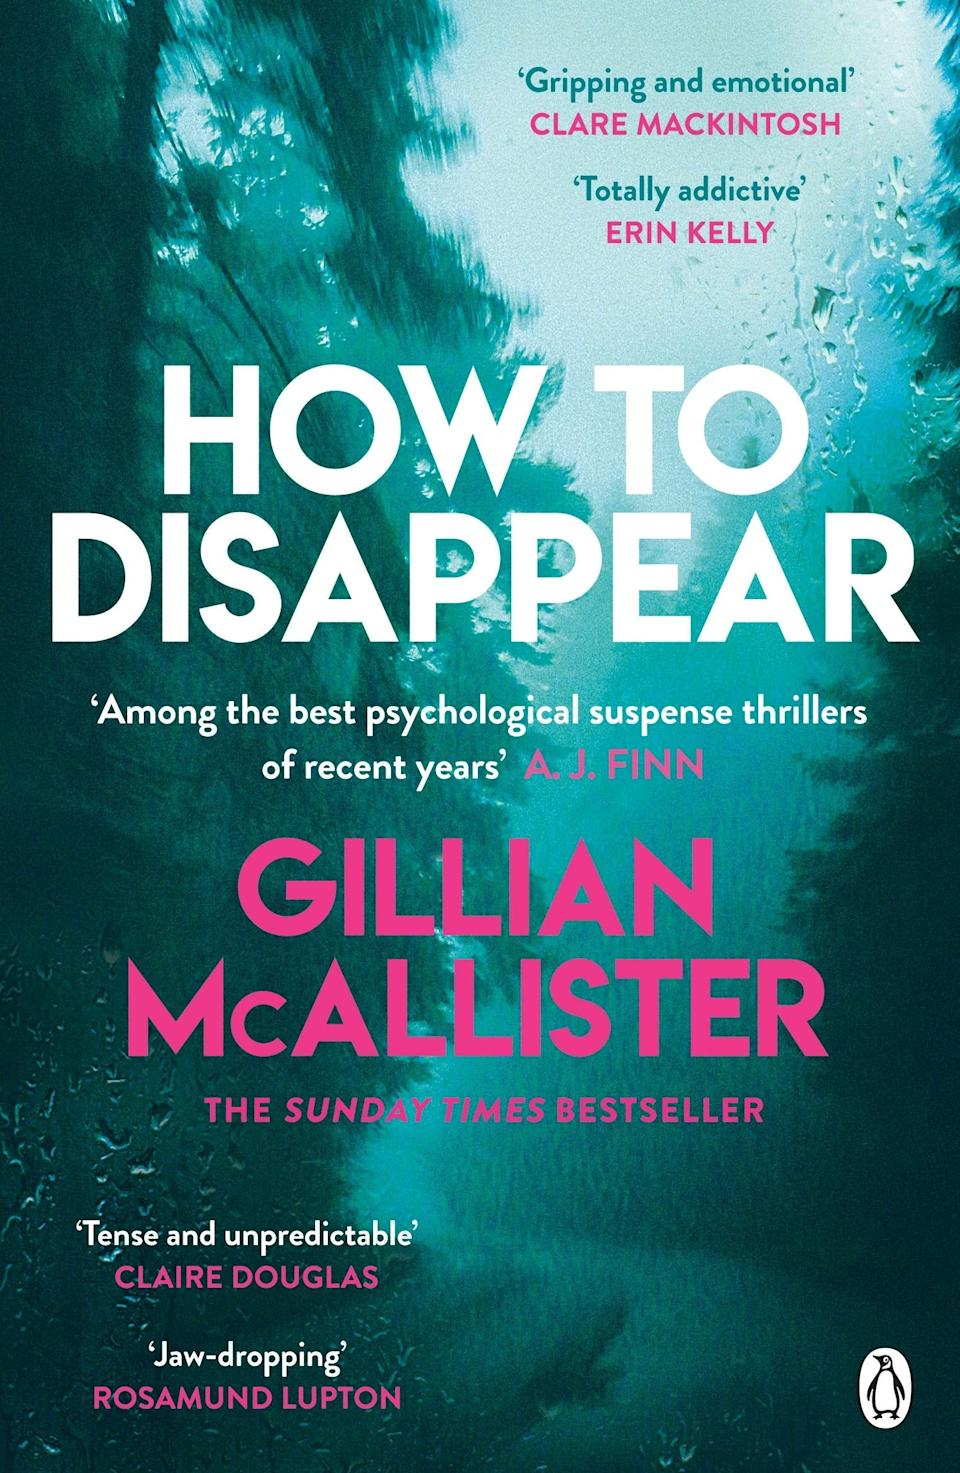 """<strong>Jessica Morgan, Staff Writer</strong><br><br><strong>Book:</strong> <em>How To Disappear</em> by Gillian McAllister<br><br><strong>Why is it your August read?</strong> I've been wanting to dive into a book that hasn't been forcing me to read it for the last six years (see <a href=""""https://www.refinery29.com/en-gb/book-recommendations-july-2020#slide-6"""" rel=""""nofollow noopener"""" target=""""_blank"""" data-ylk=""""slk:July's read"""" class=""""link rapid-noclick-resp"""">July's read</a> to feel my pain) and what better choice is there than a good old crime thriller? Gillian McAllister, who is best known for her unpredictable twists and turns, gives us a dark and tense human experience of the witness protection programme and its emotionally devastating impact on a blended family living in London. It's a rollercoaster that will leave you gasping and turning the pages for more. <br><br><strong>Gillian McAllister</strong> How To Disappear, $, available at <a href=""""https://amzn.to/318ka0r"""" rel=""""nofollow noopener"""" target=""""_blank"""" data-ylk=""""slk:Amazon"""" class=""""link rapid-noclick-resp"""">Amazon</a>"""